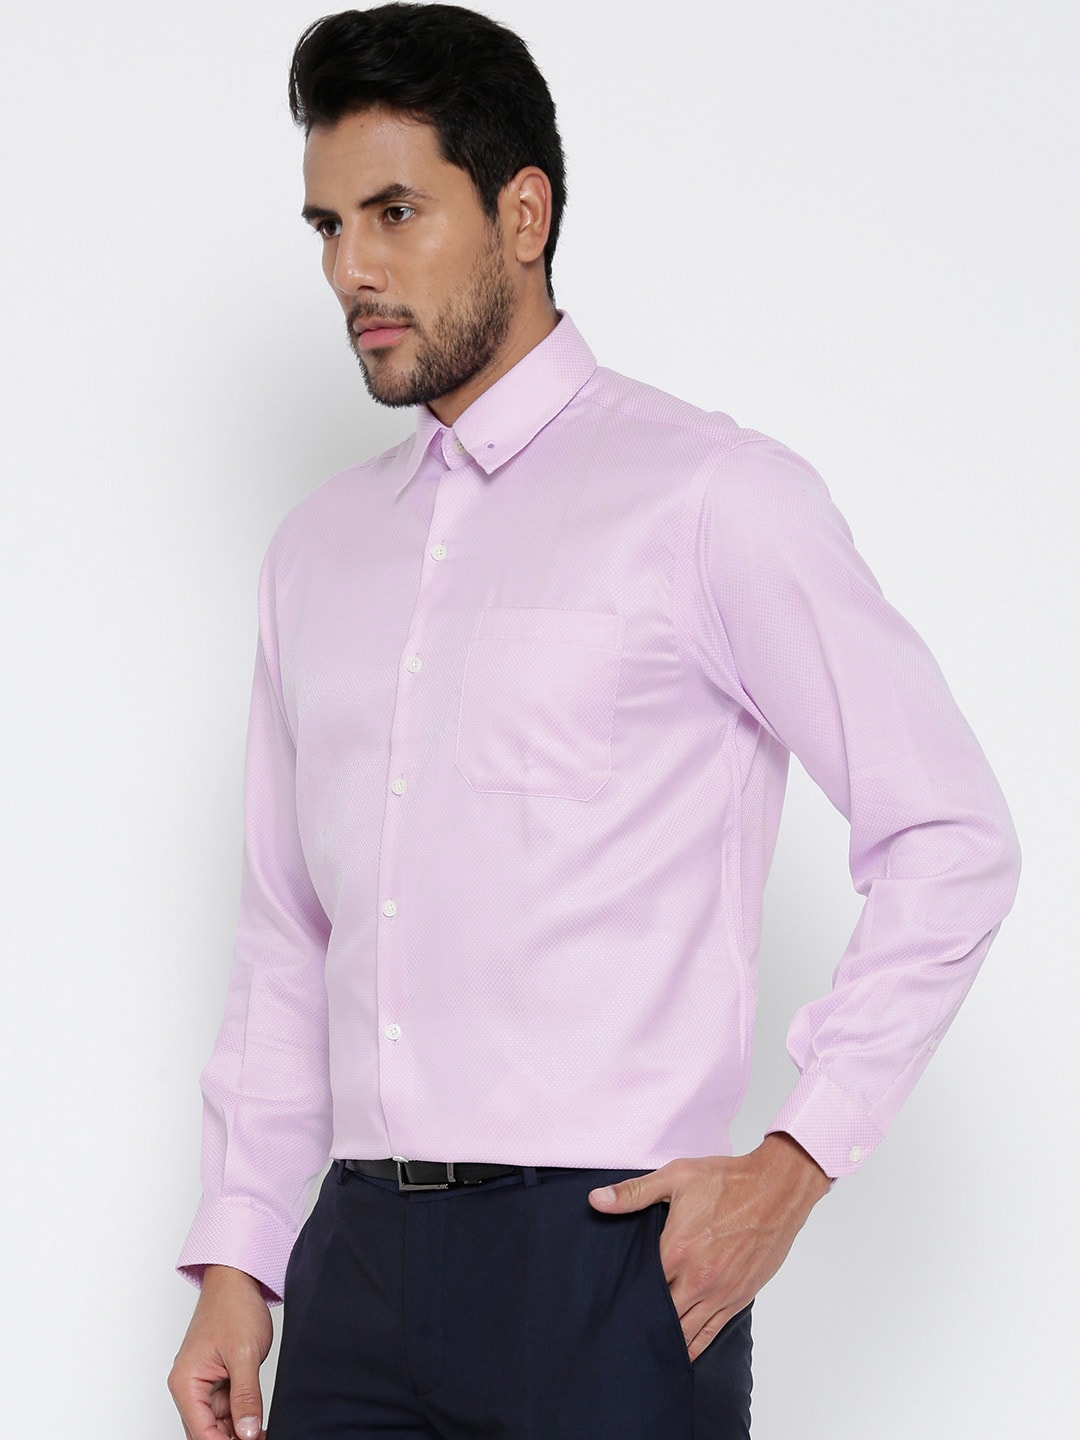 Men Light Pink Shirt - Buy Men Light Pink Shirt online in India